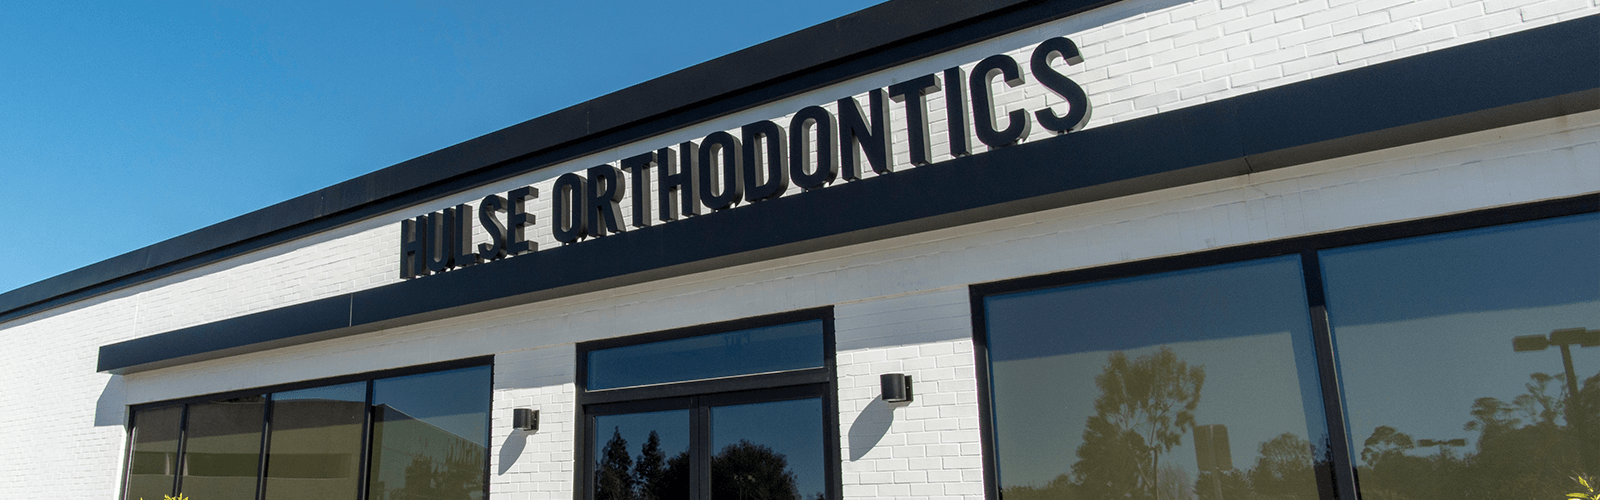 orthodontic practice